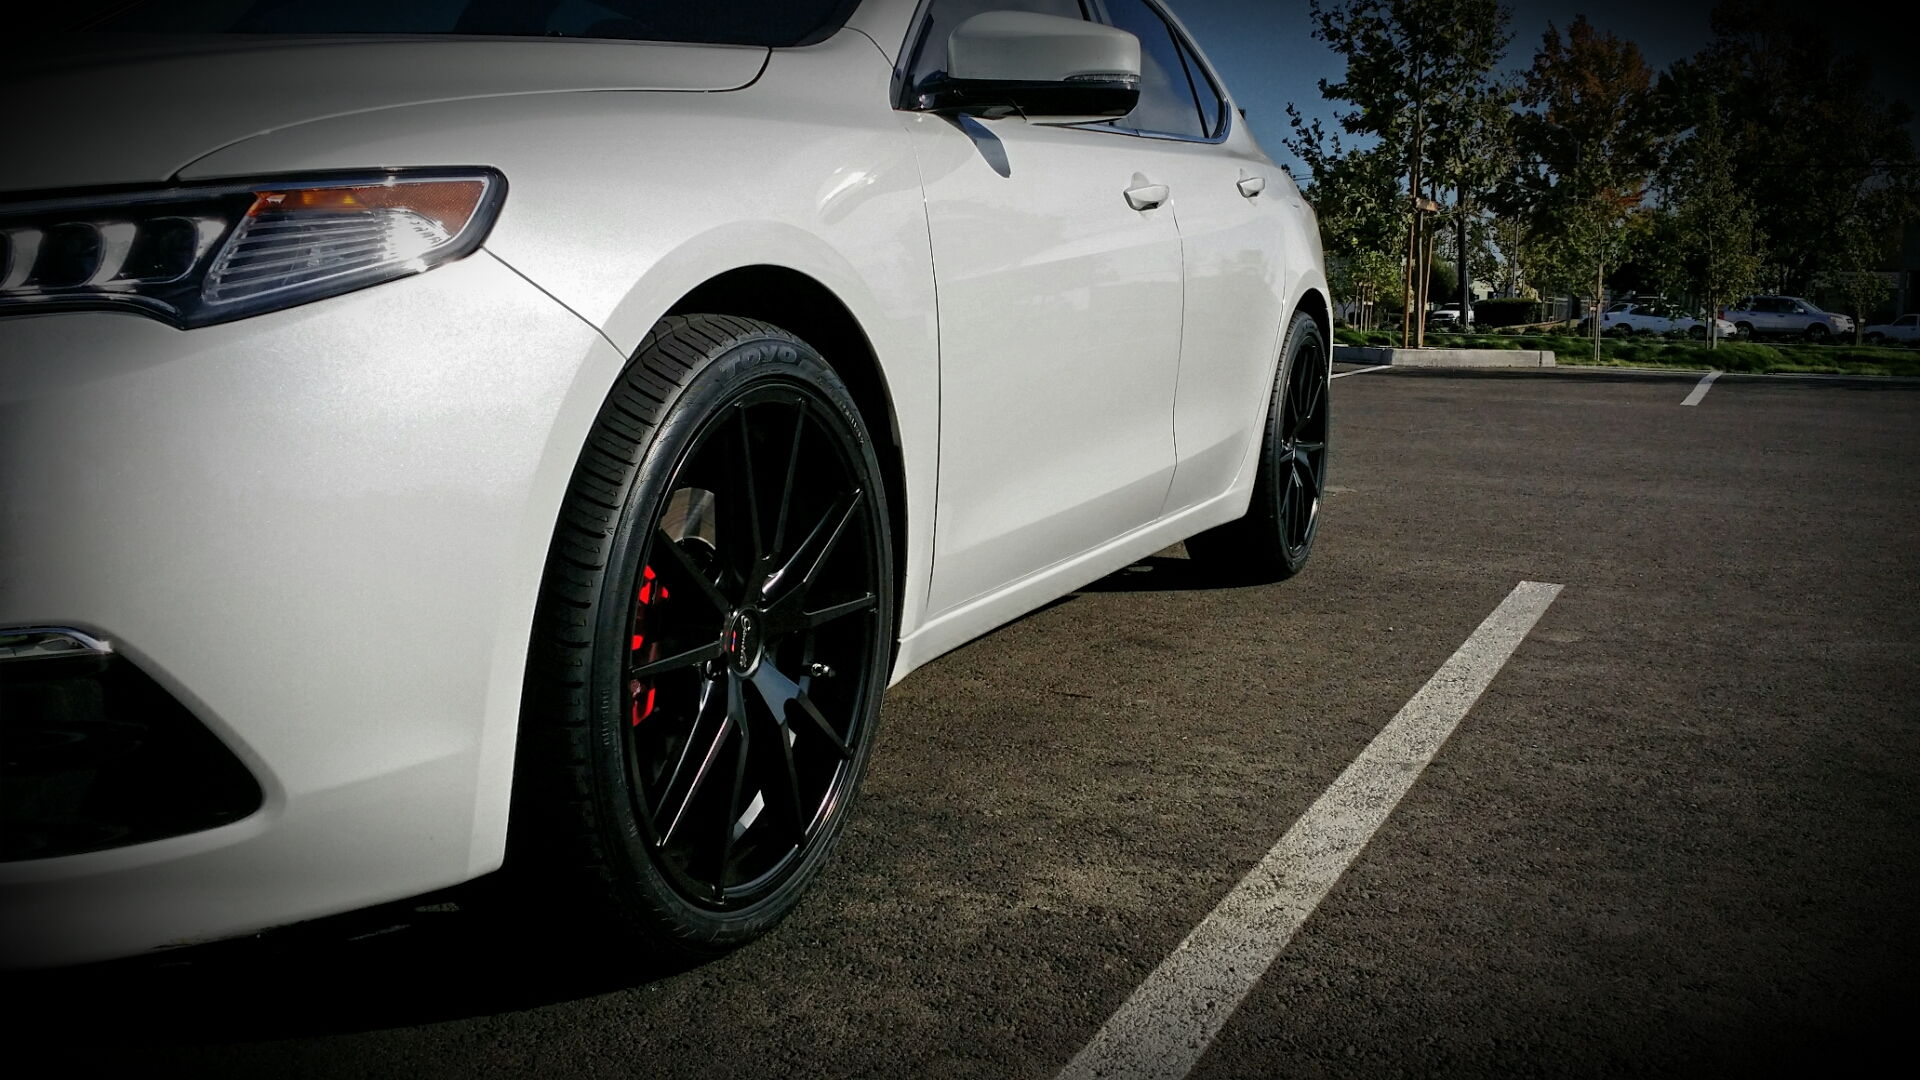 2015 Acura Tlx Tech >> Chris' TLX BWP Black Rims, Roof, & Grille - AcuraZine ...